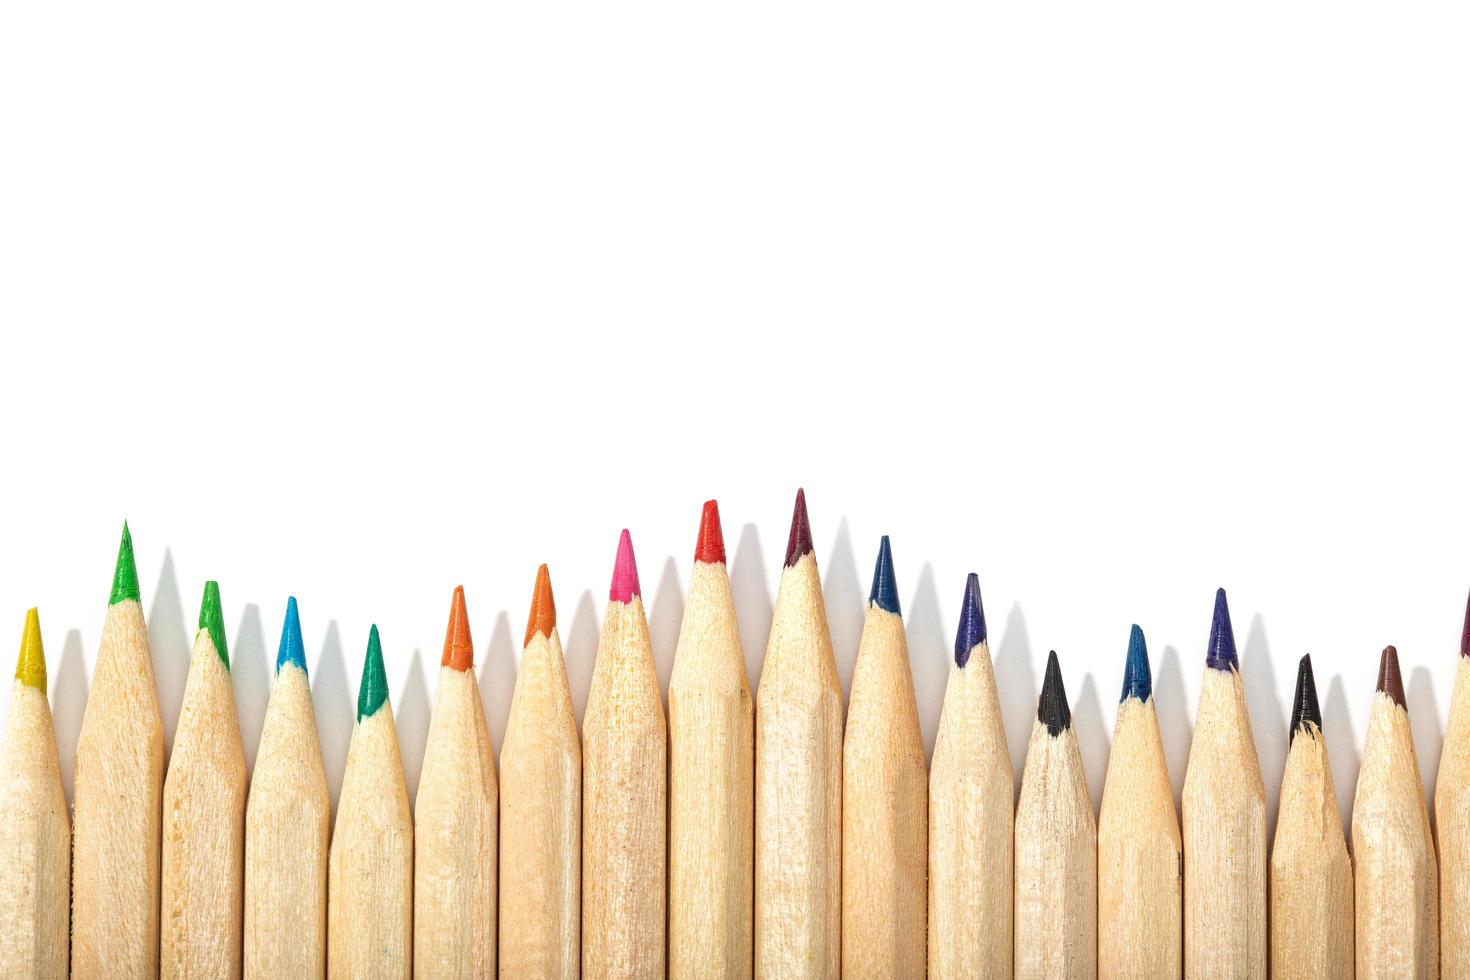 Border of colored pencils on a white background photo